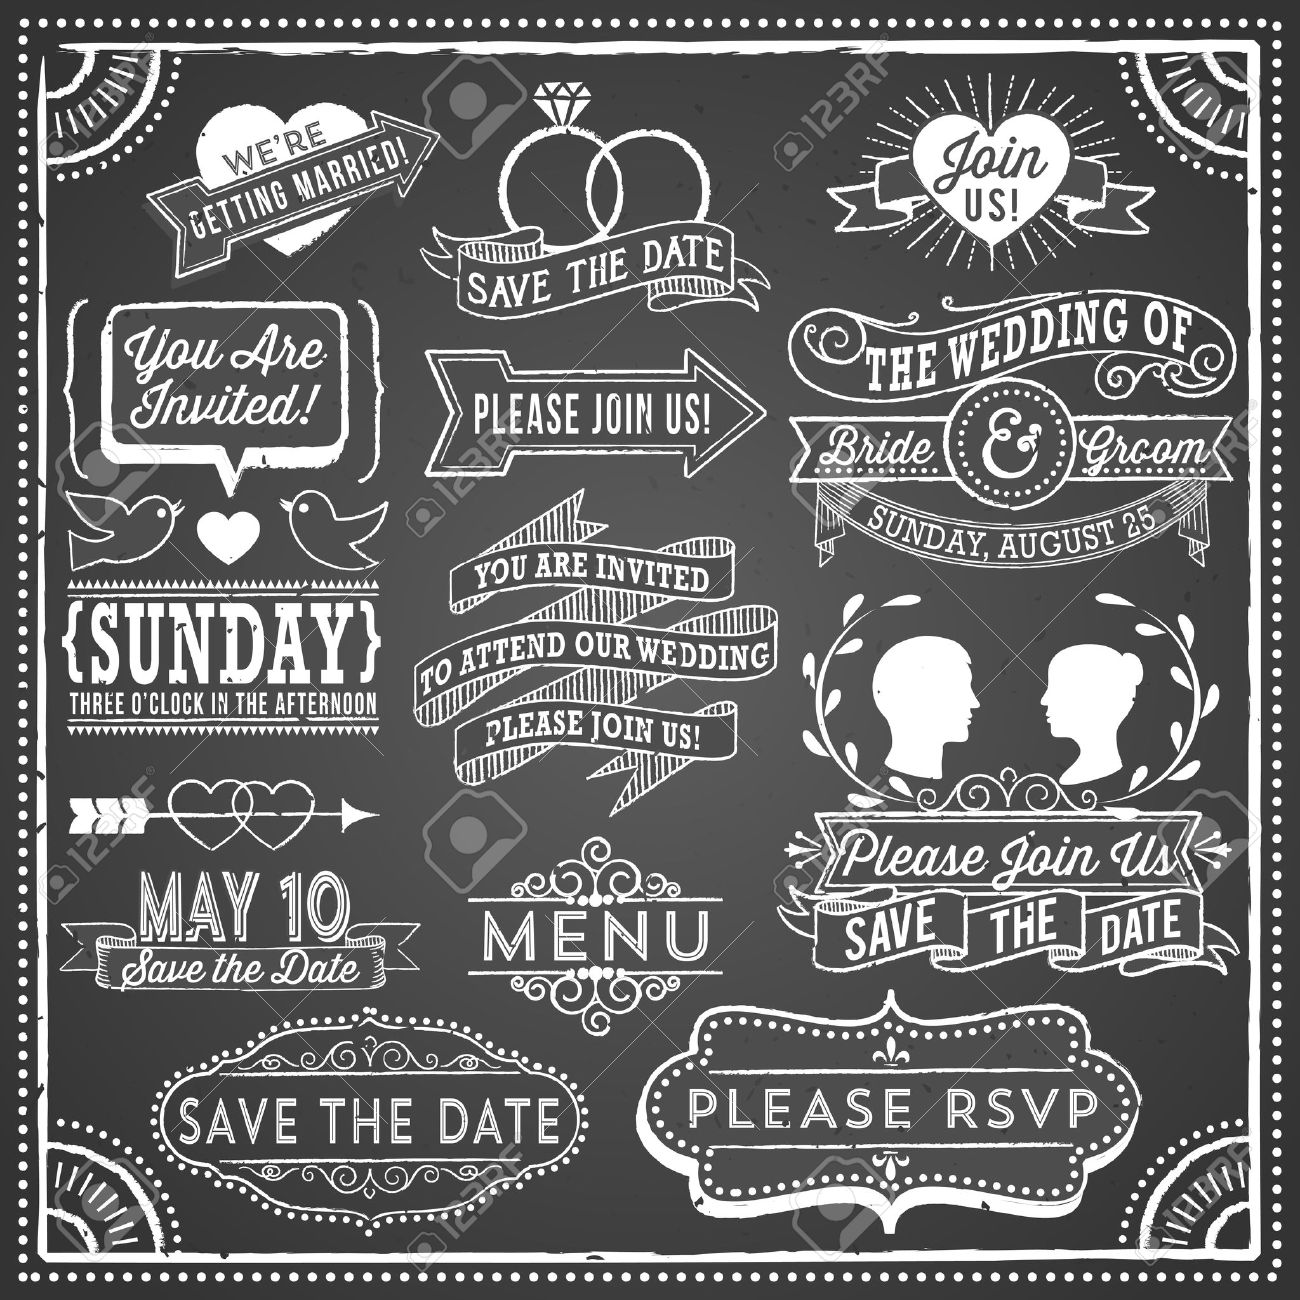 Chalkboard Wedding Invitation Elements - Retro and hand-drawn vintage chalkboard invitation elements. File is layered, each object is grouped separately and colors are global for easy editing. Texture can be removed. - 54030507